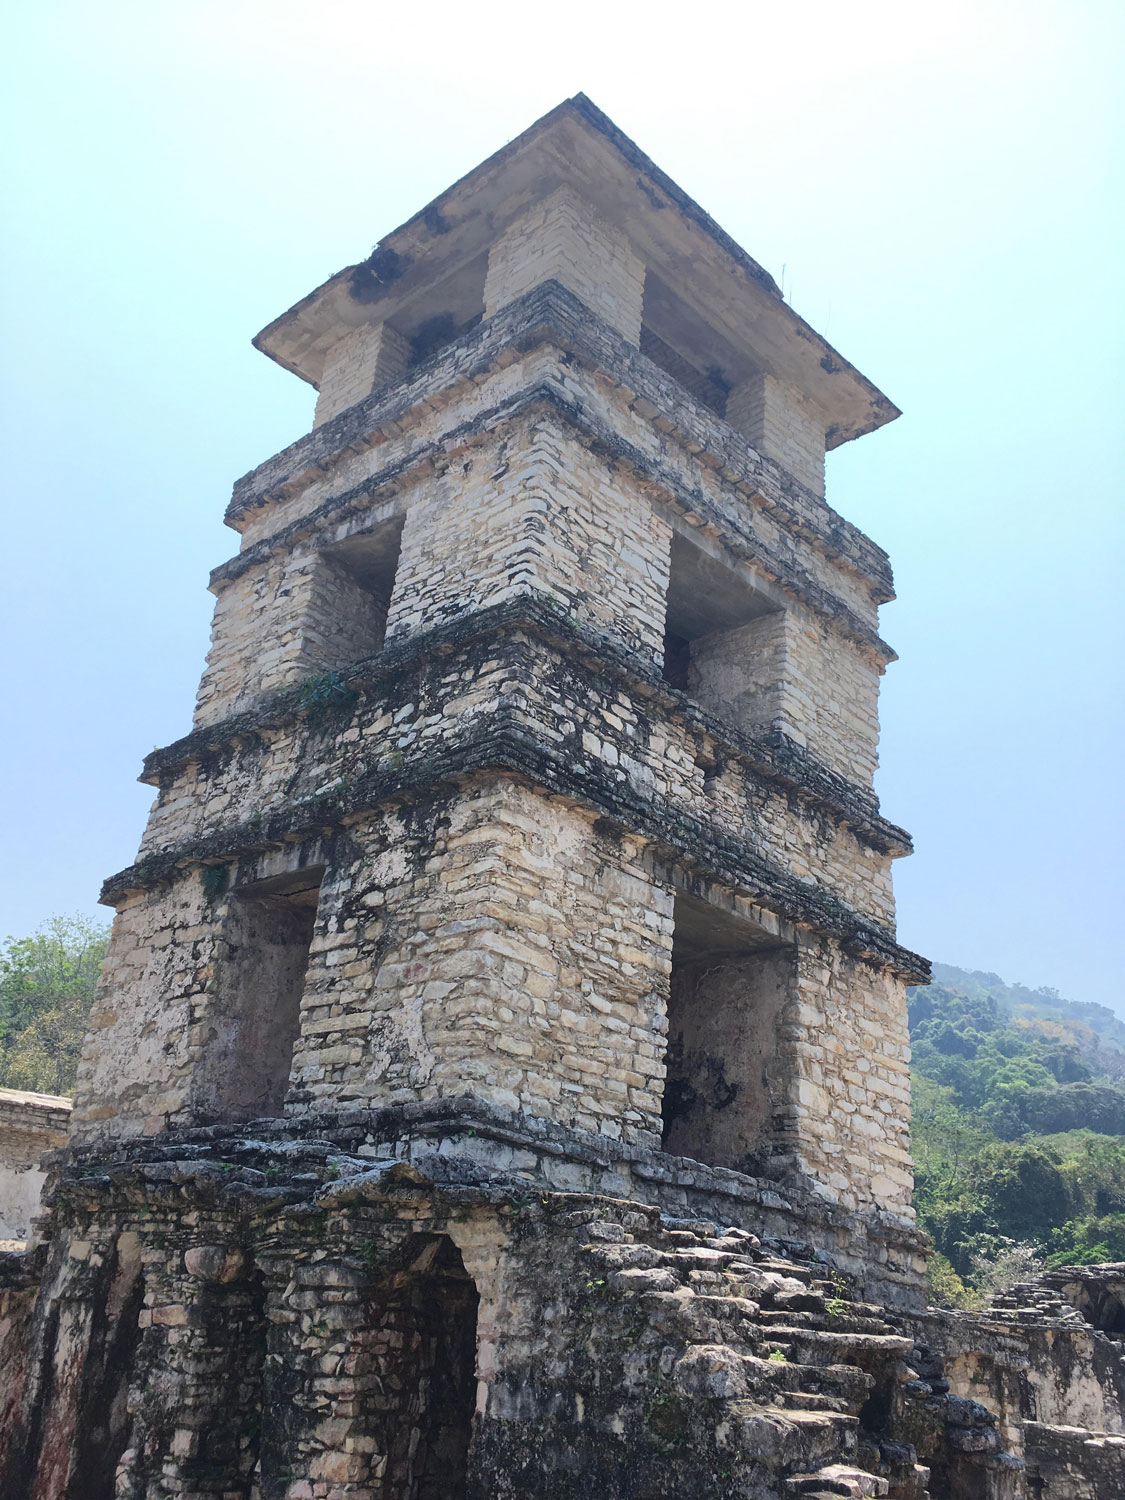 The Observation Tower.